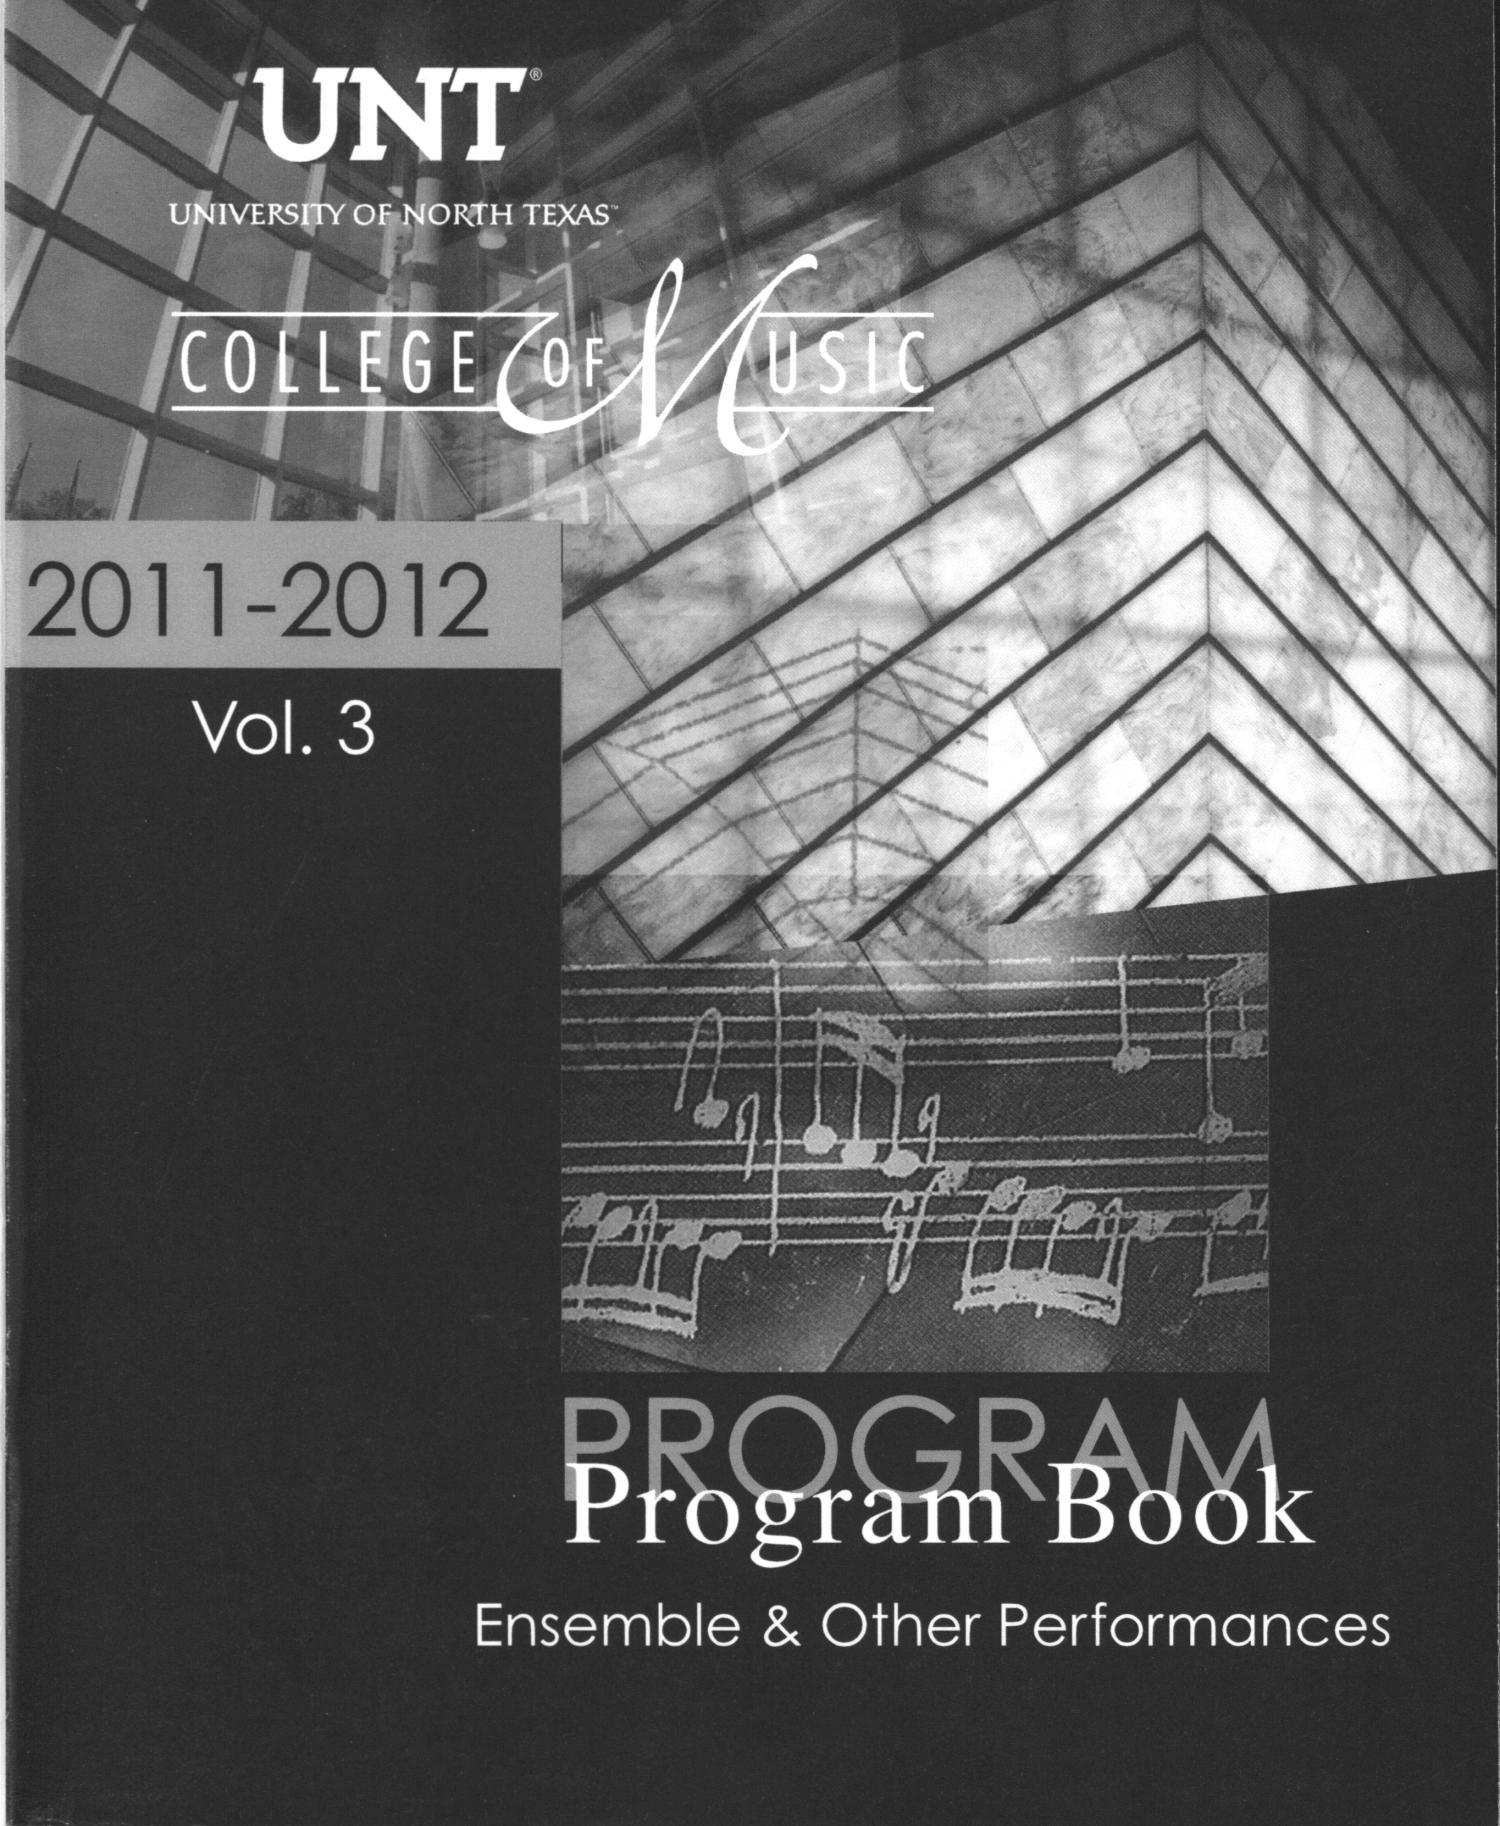 College of Music Program Book 2011-2012: Ensemble & Other Performances, Volume 3                                                                                                      Front Cover